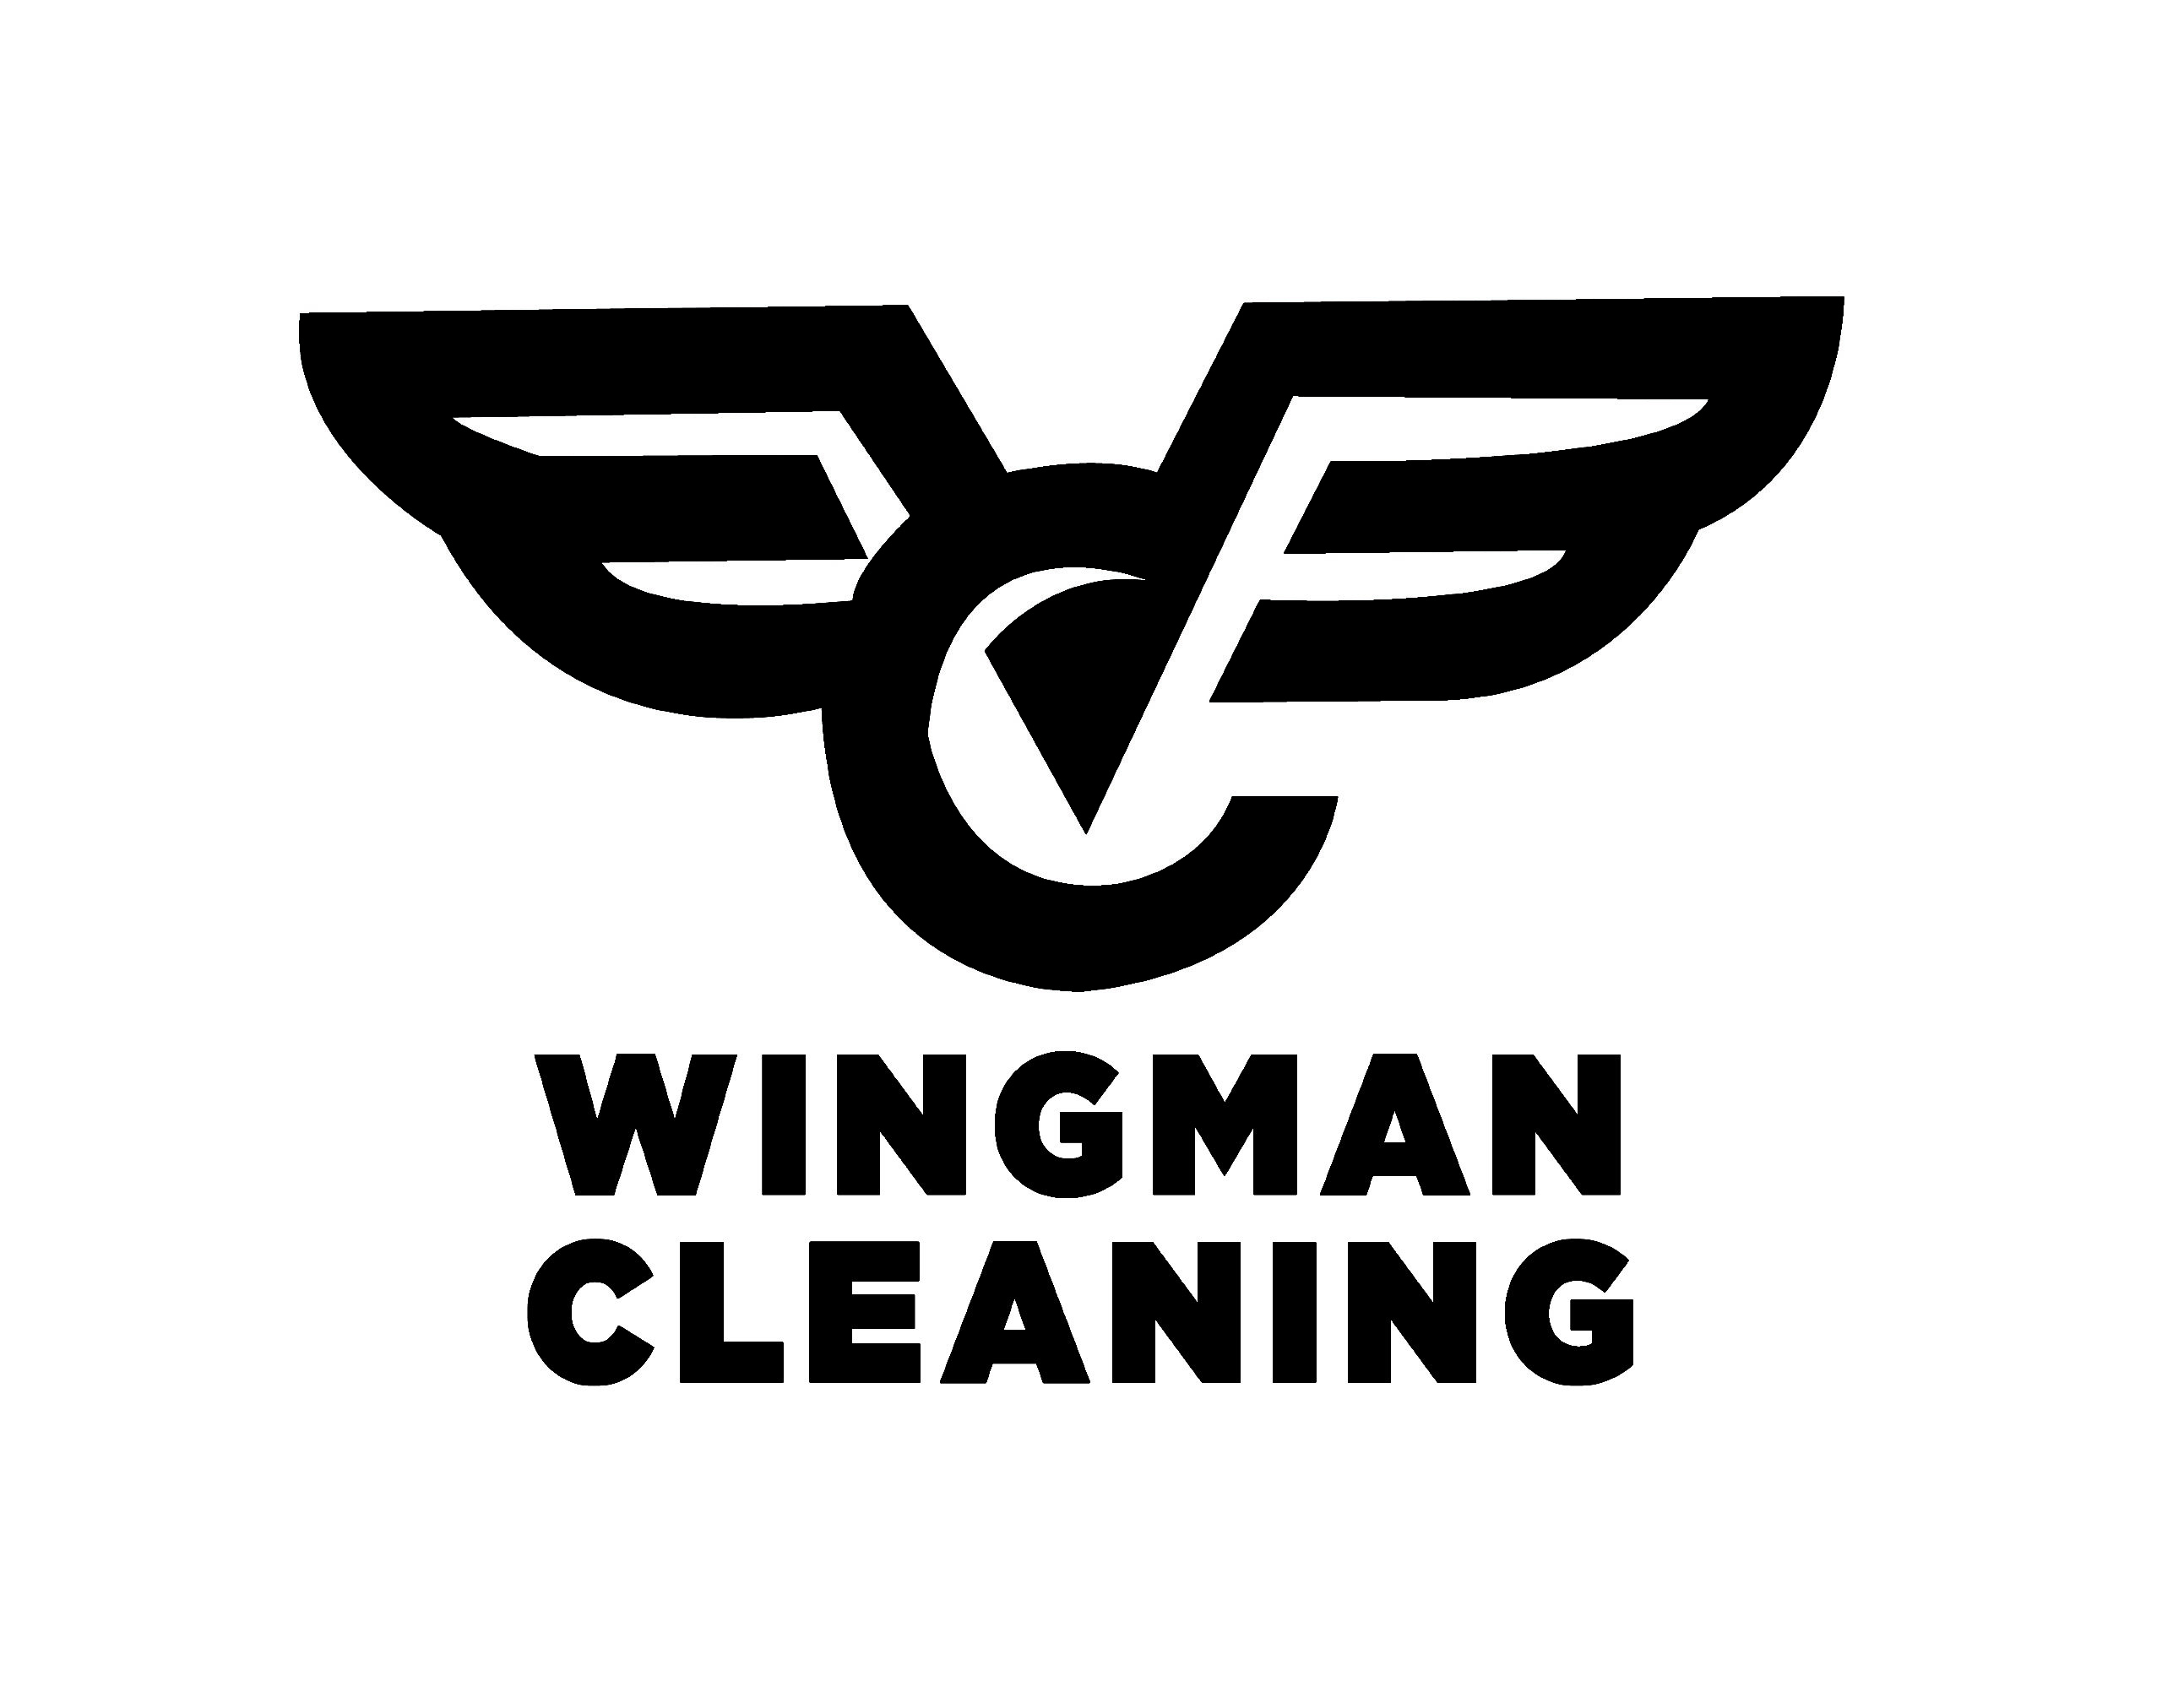 Wingman Cleaning